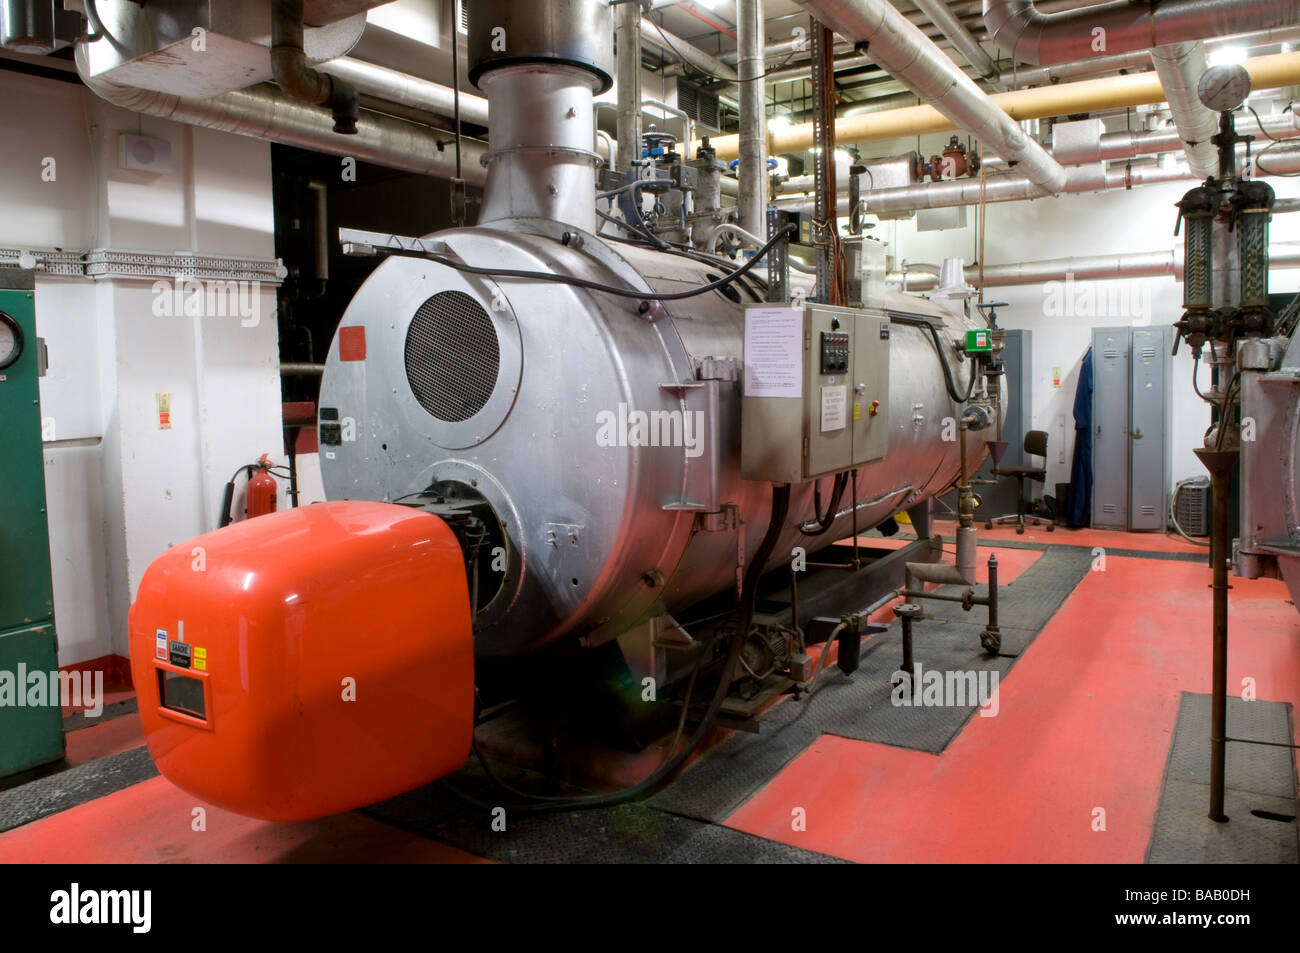 Commercial Building Boiler Stockfotos & Commercial Building Boiler ...